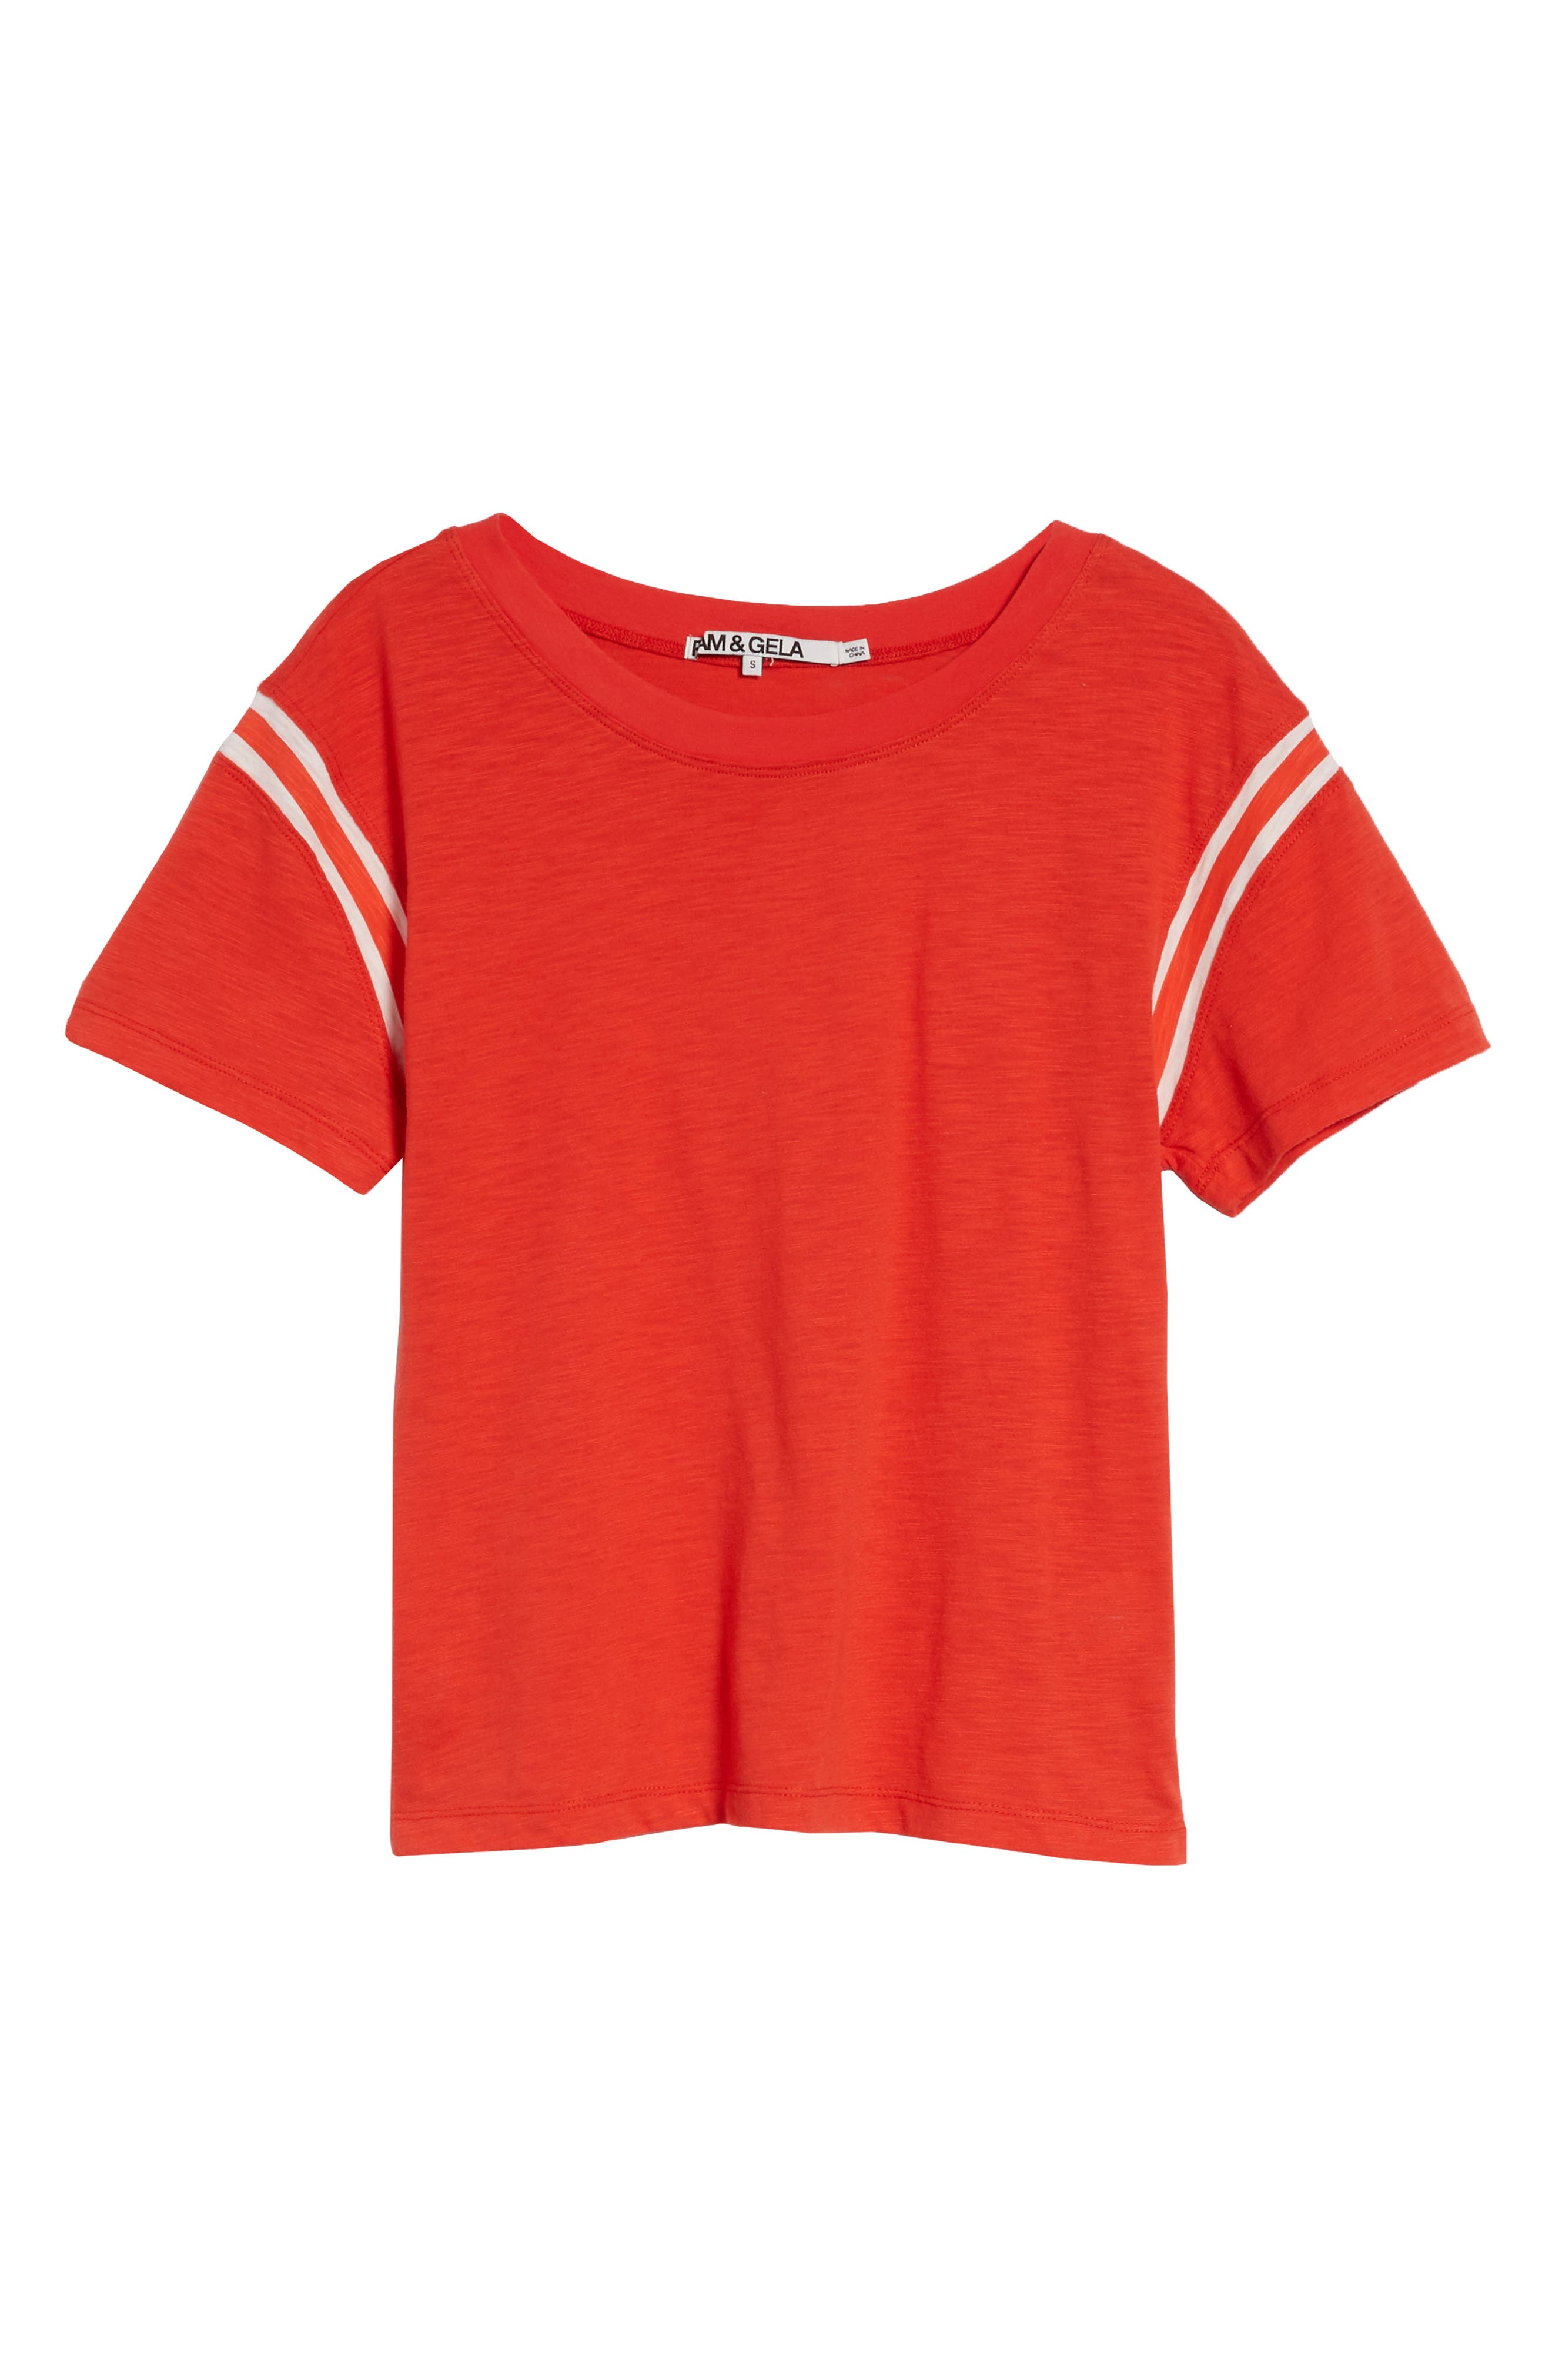 Football Tee,                             Alternate thumbnail 6, color,                             CANDY RED